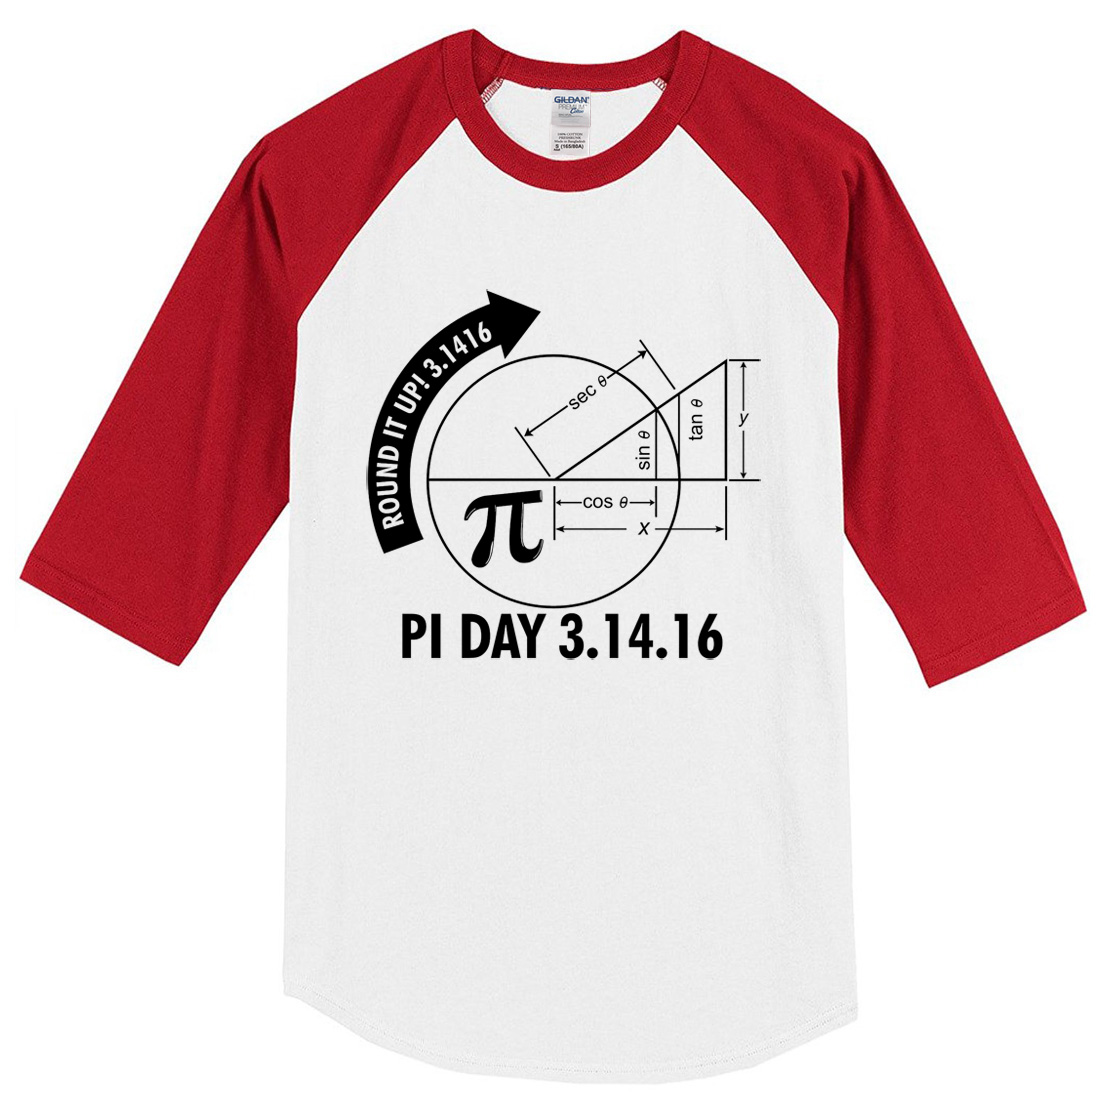 2018 summer T-shirts Pi Day 3.1416 Round It Up Math Graph STEM T-Shirt harajuku sportwear crossfit brand clothing raglan t shirt